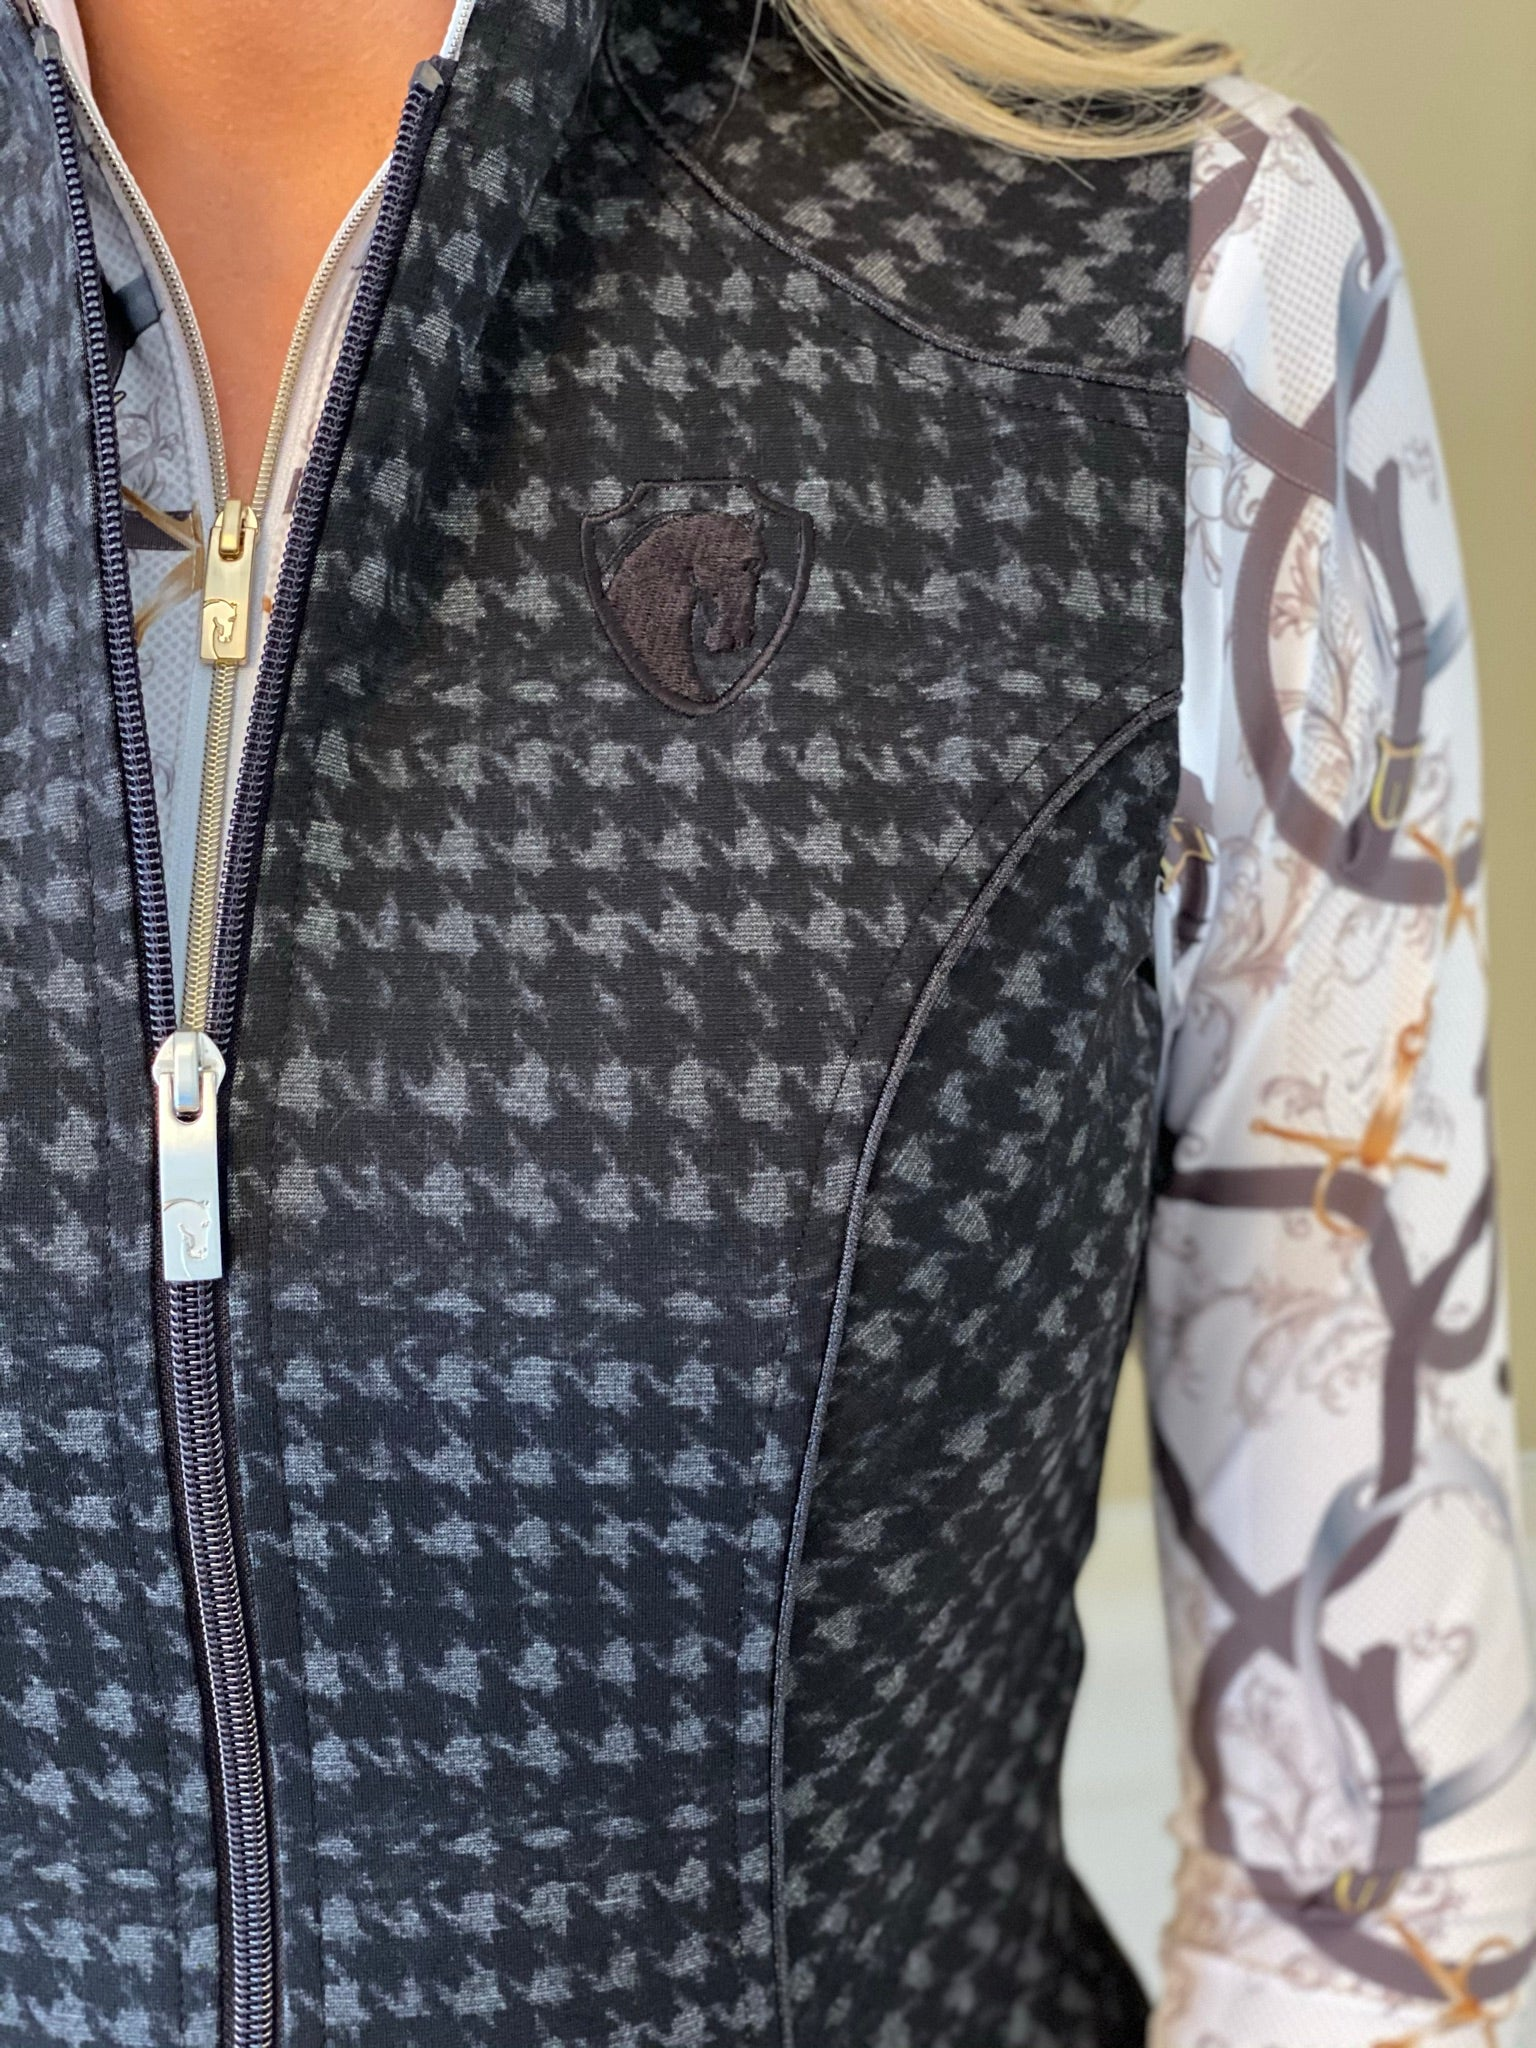 Tryon Stretch Vest in Black/Gray Houndstooth (4014)